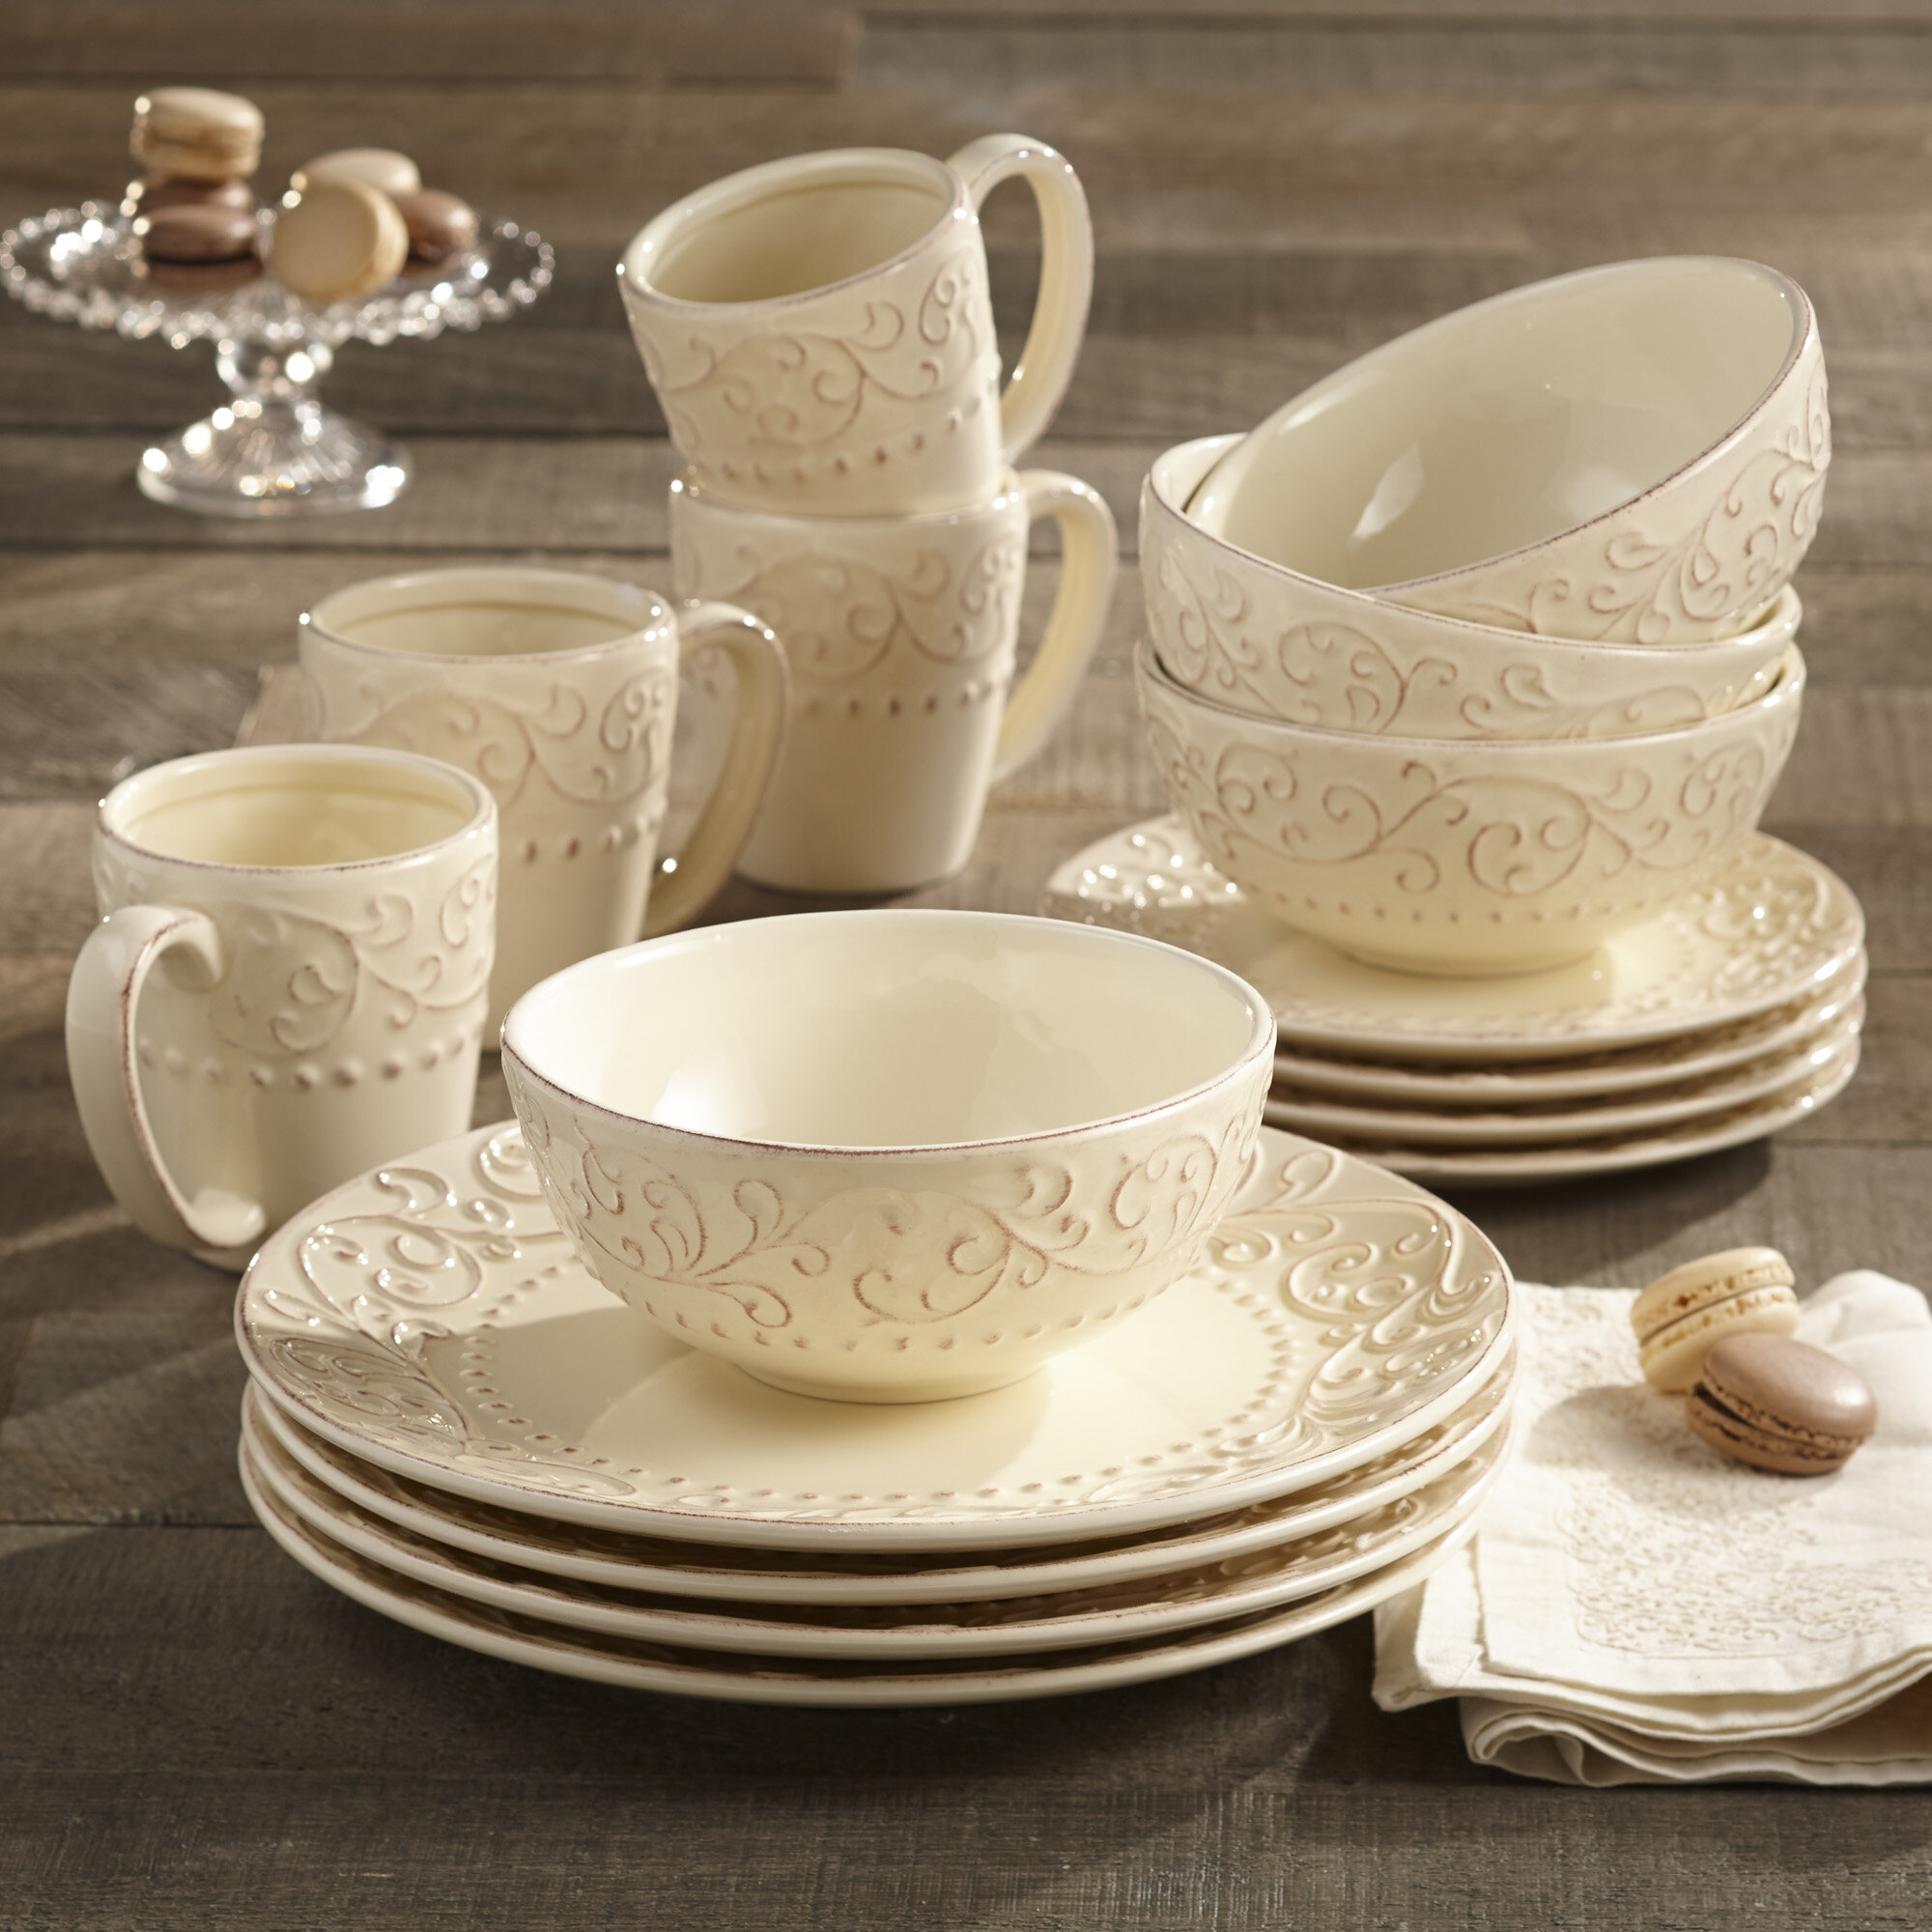 Farmhouse Dinnerware Sets Free Shipping Over 35 Wayfair